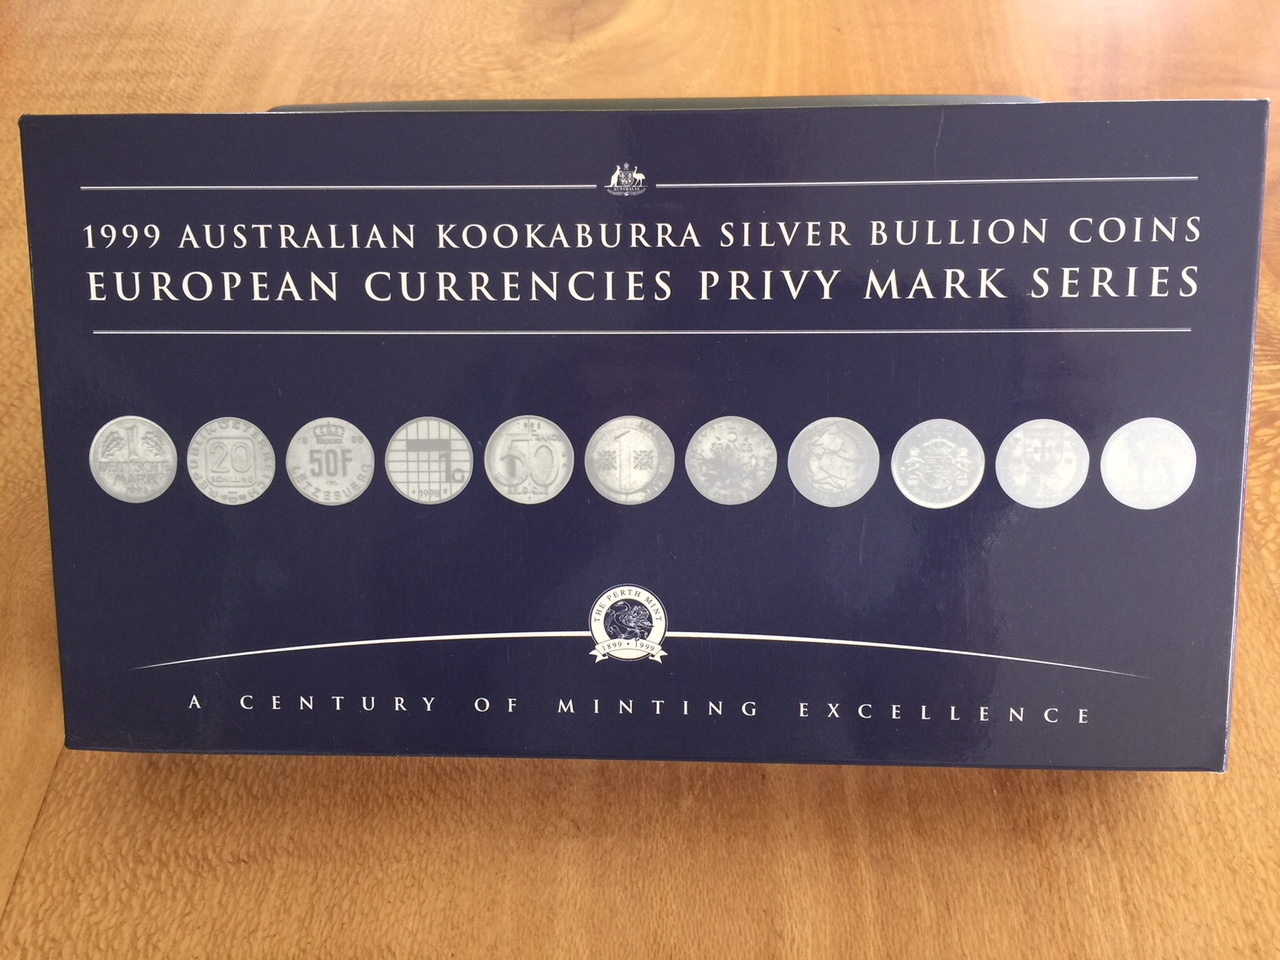 Thumbnail for 1999 Australian Kookaburra Silver Bullion Coins - European Currencies Privy Mark